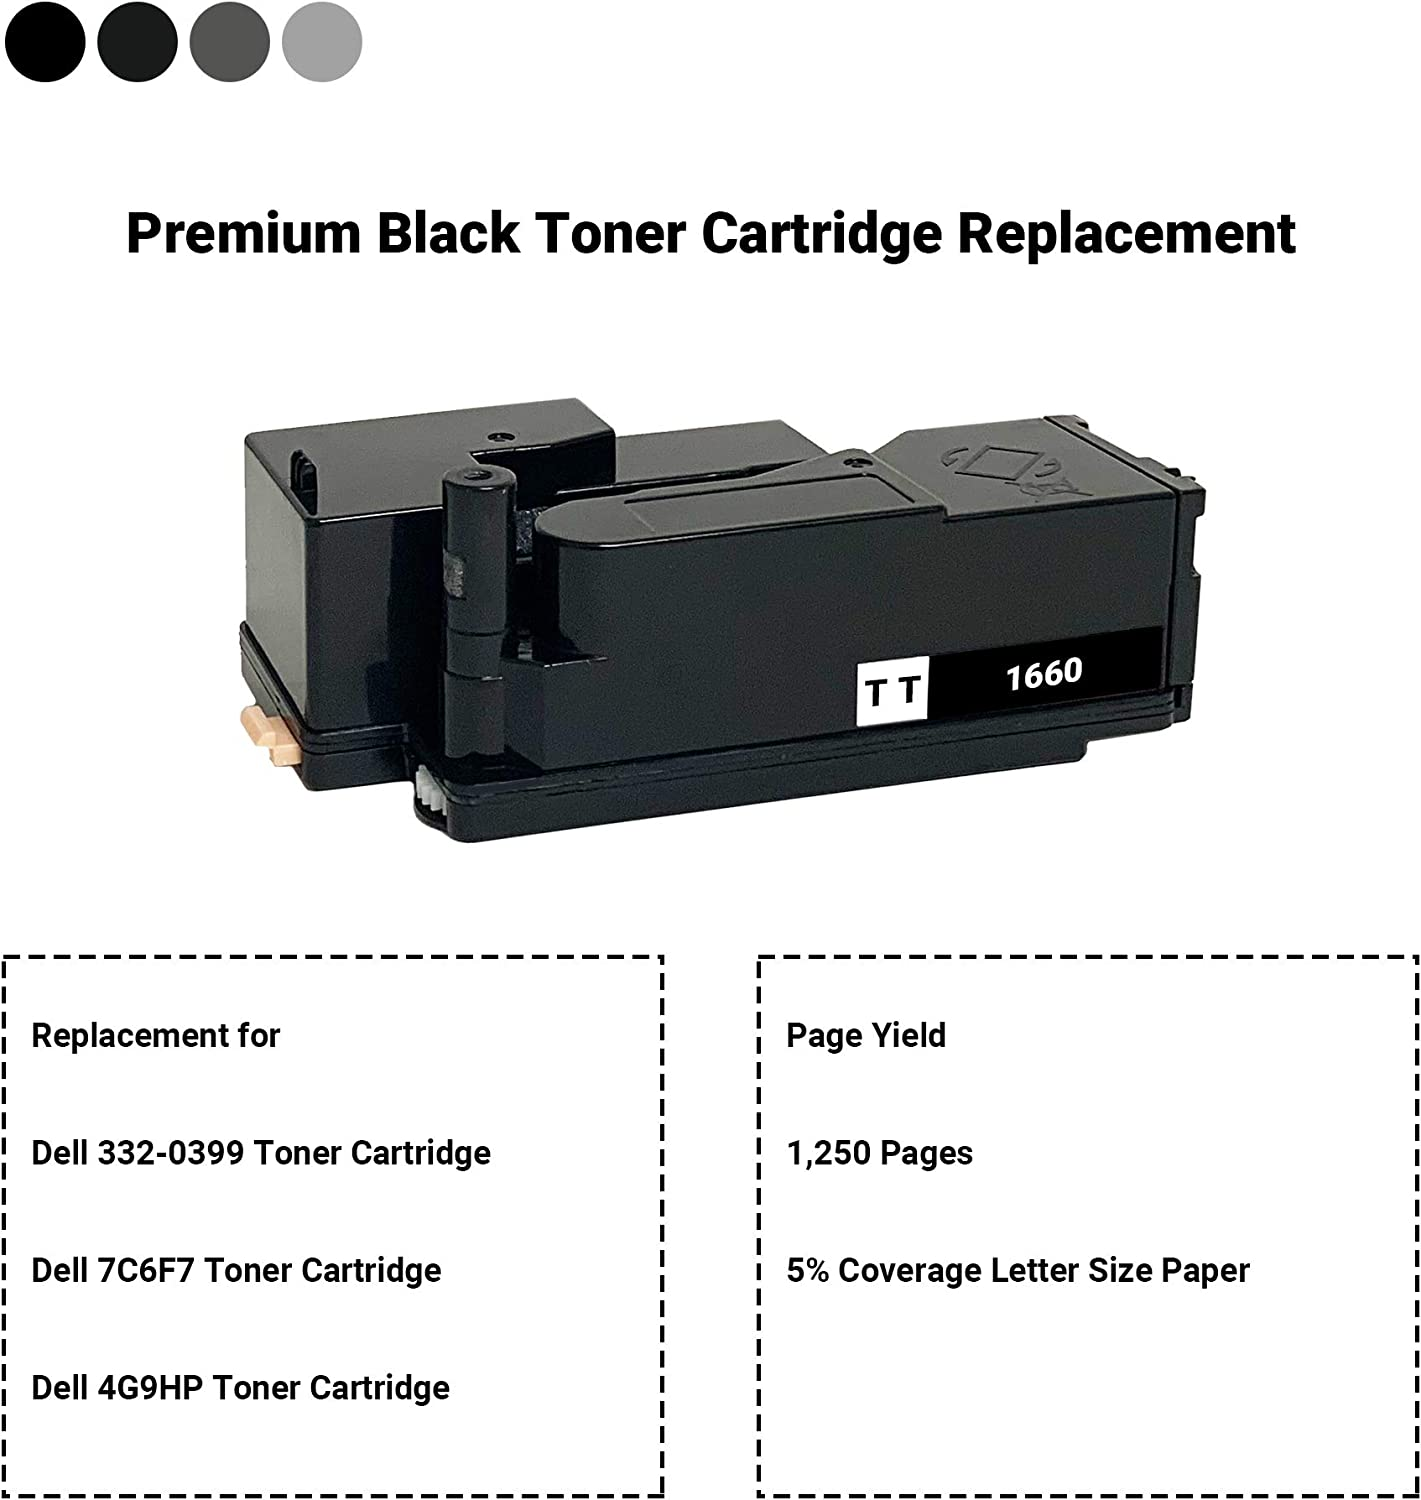 4 Pack Black 332-0399, Cyan 332-0400, Magenta 332-0401, Yellow 332-0402 TCT Premium Compatible Toner Cartridge Replacement for Dell C1660W Printers